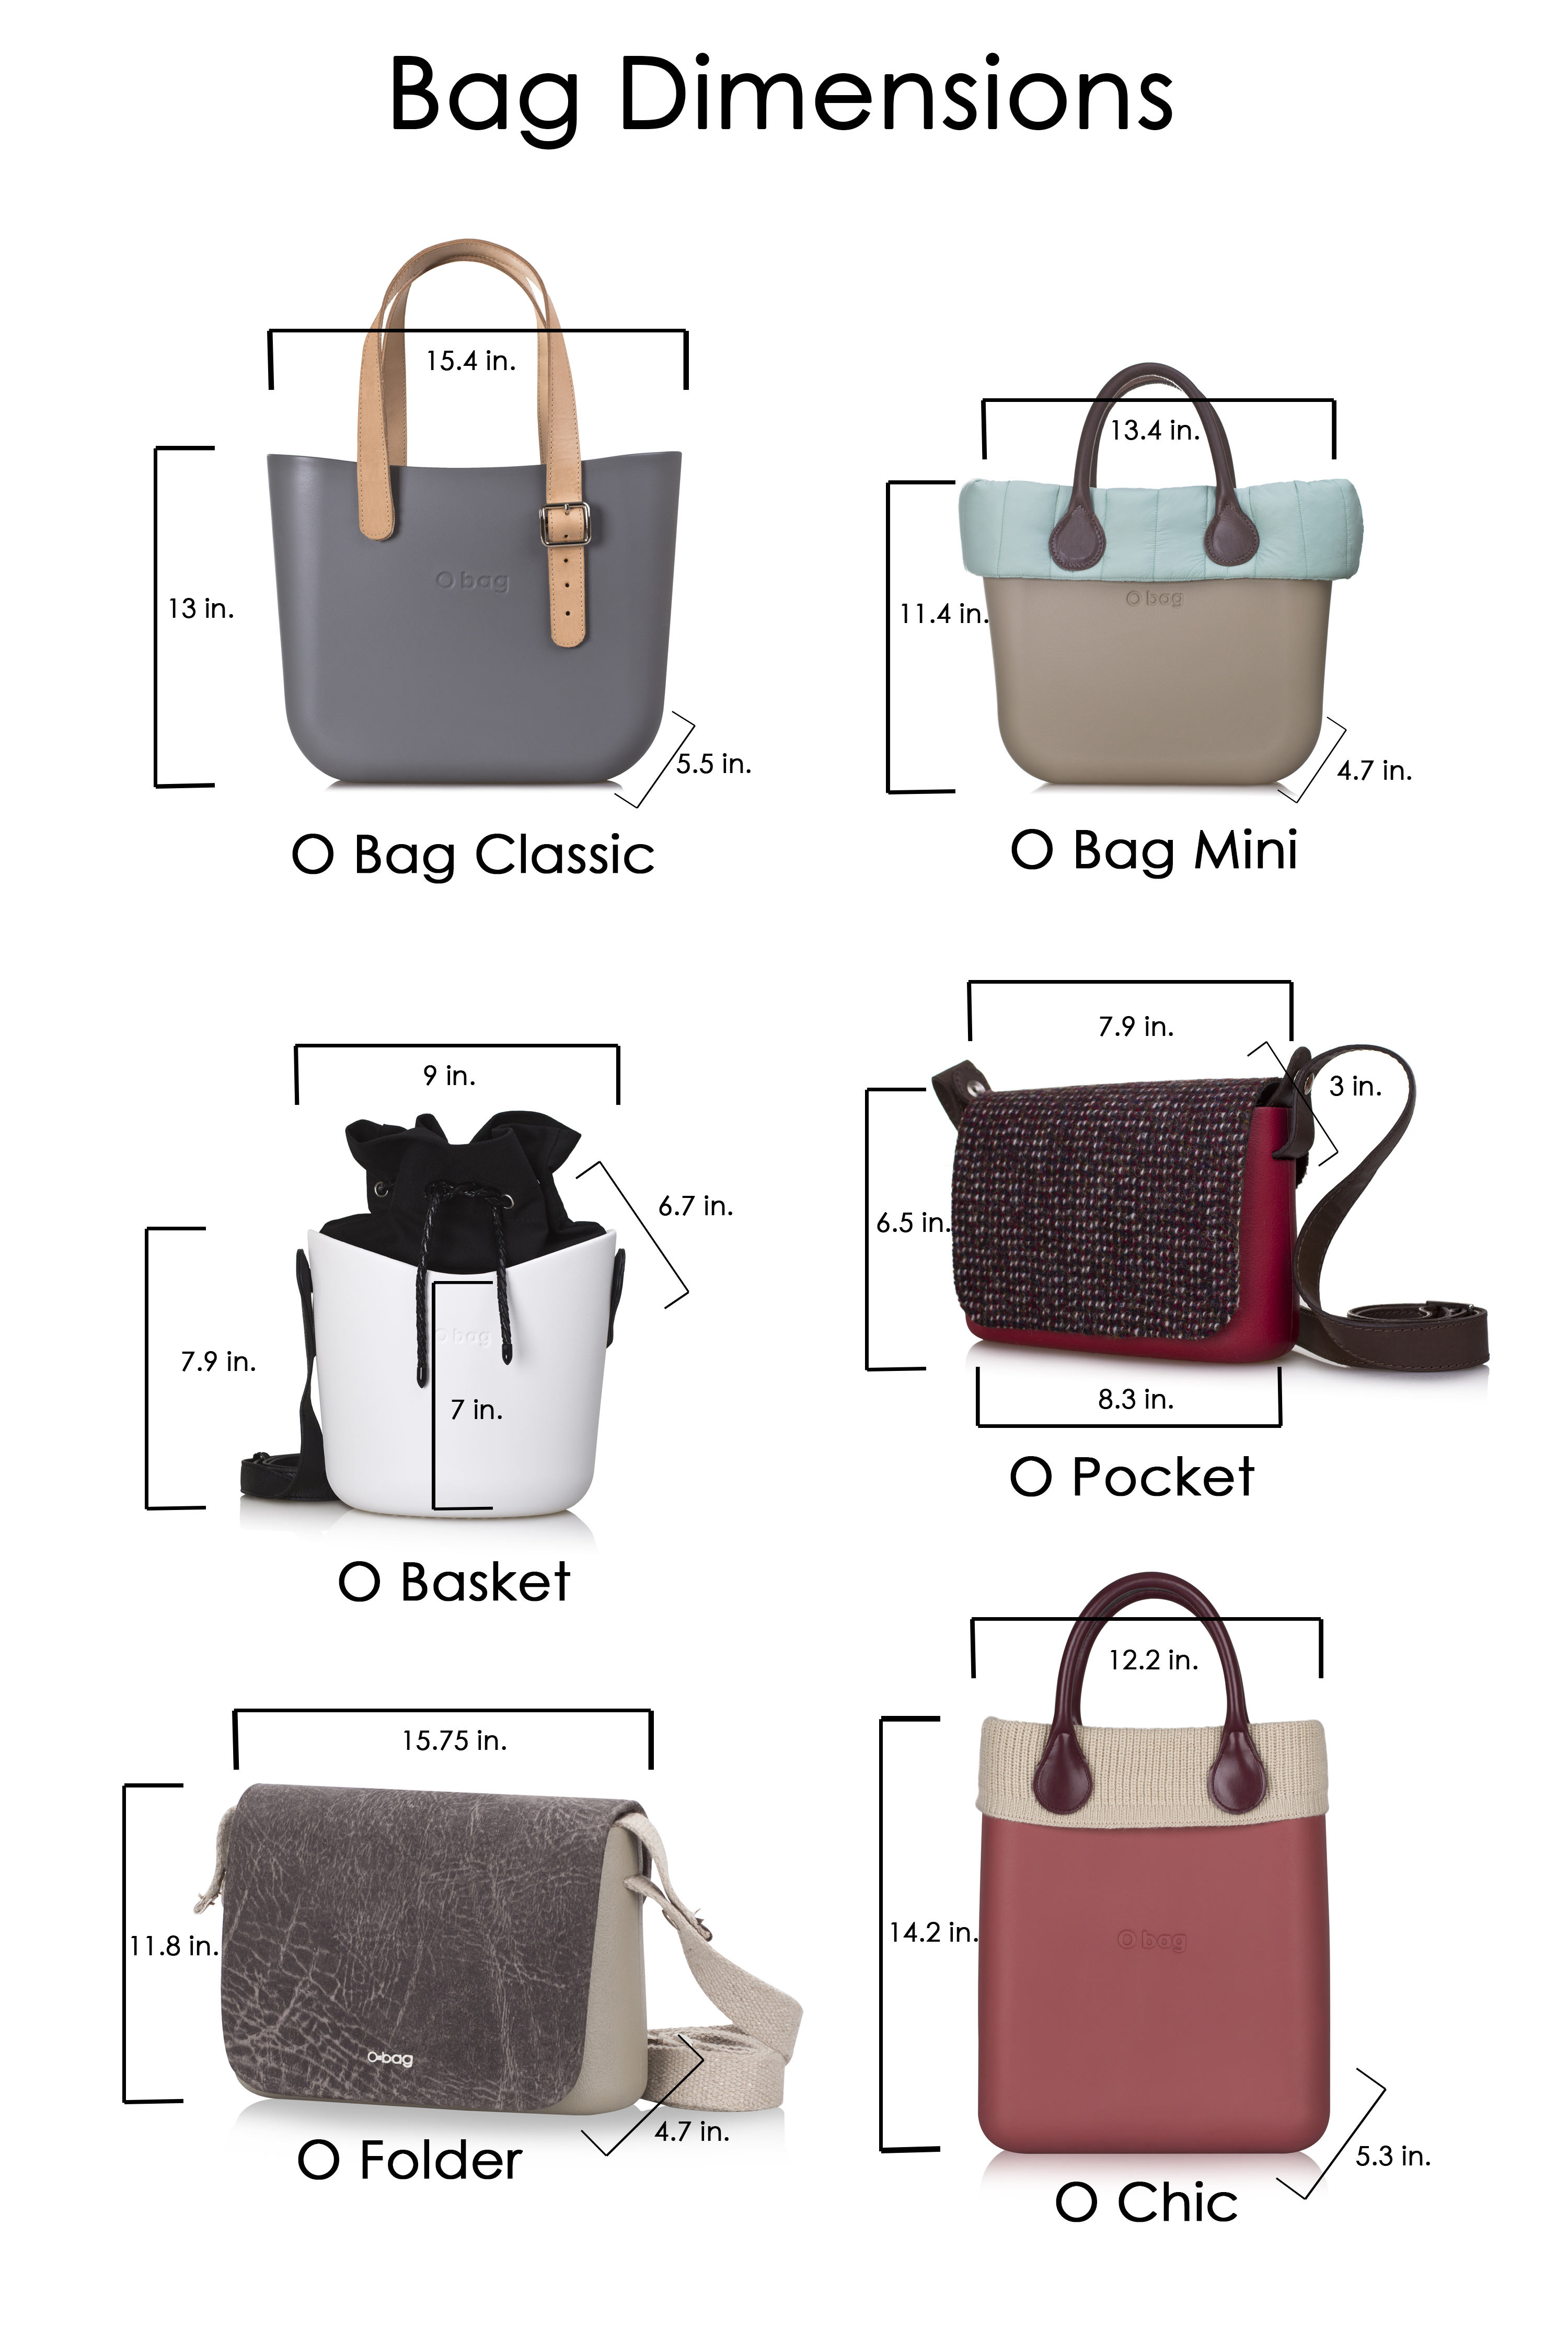 o bag mini classic